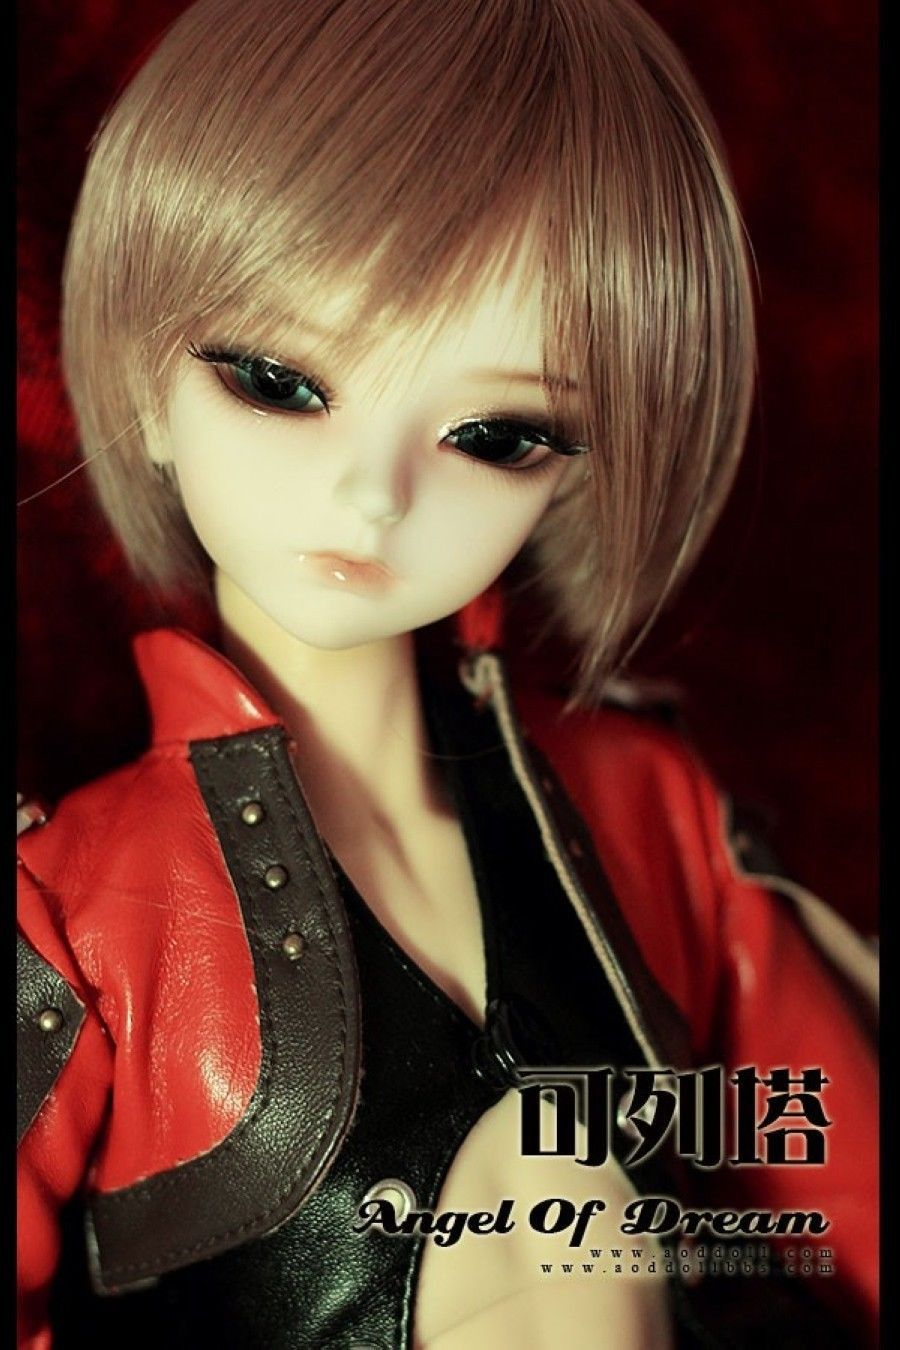 [wamami] AOD Mini 1/4 BJD Dollfie Girl Set* FREE FACE UP/EYES/~Li Ge 1 4 bjd dollfie girl doll parts single head include make up shang nai in stock